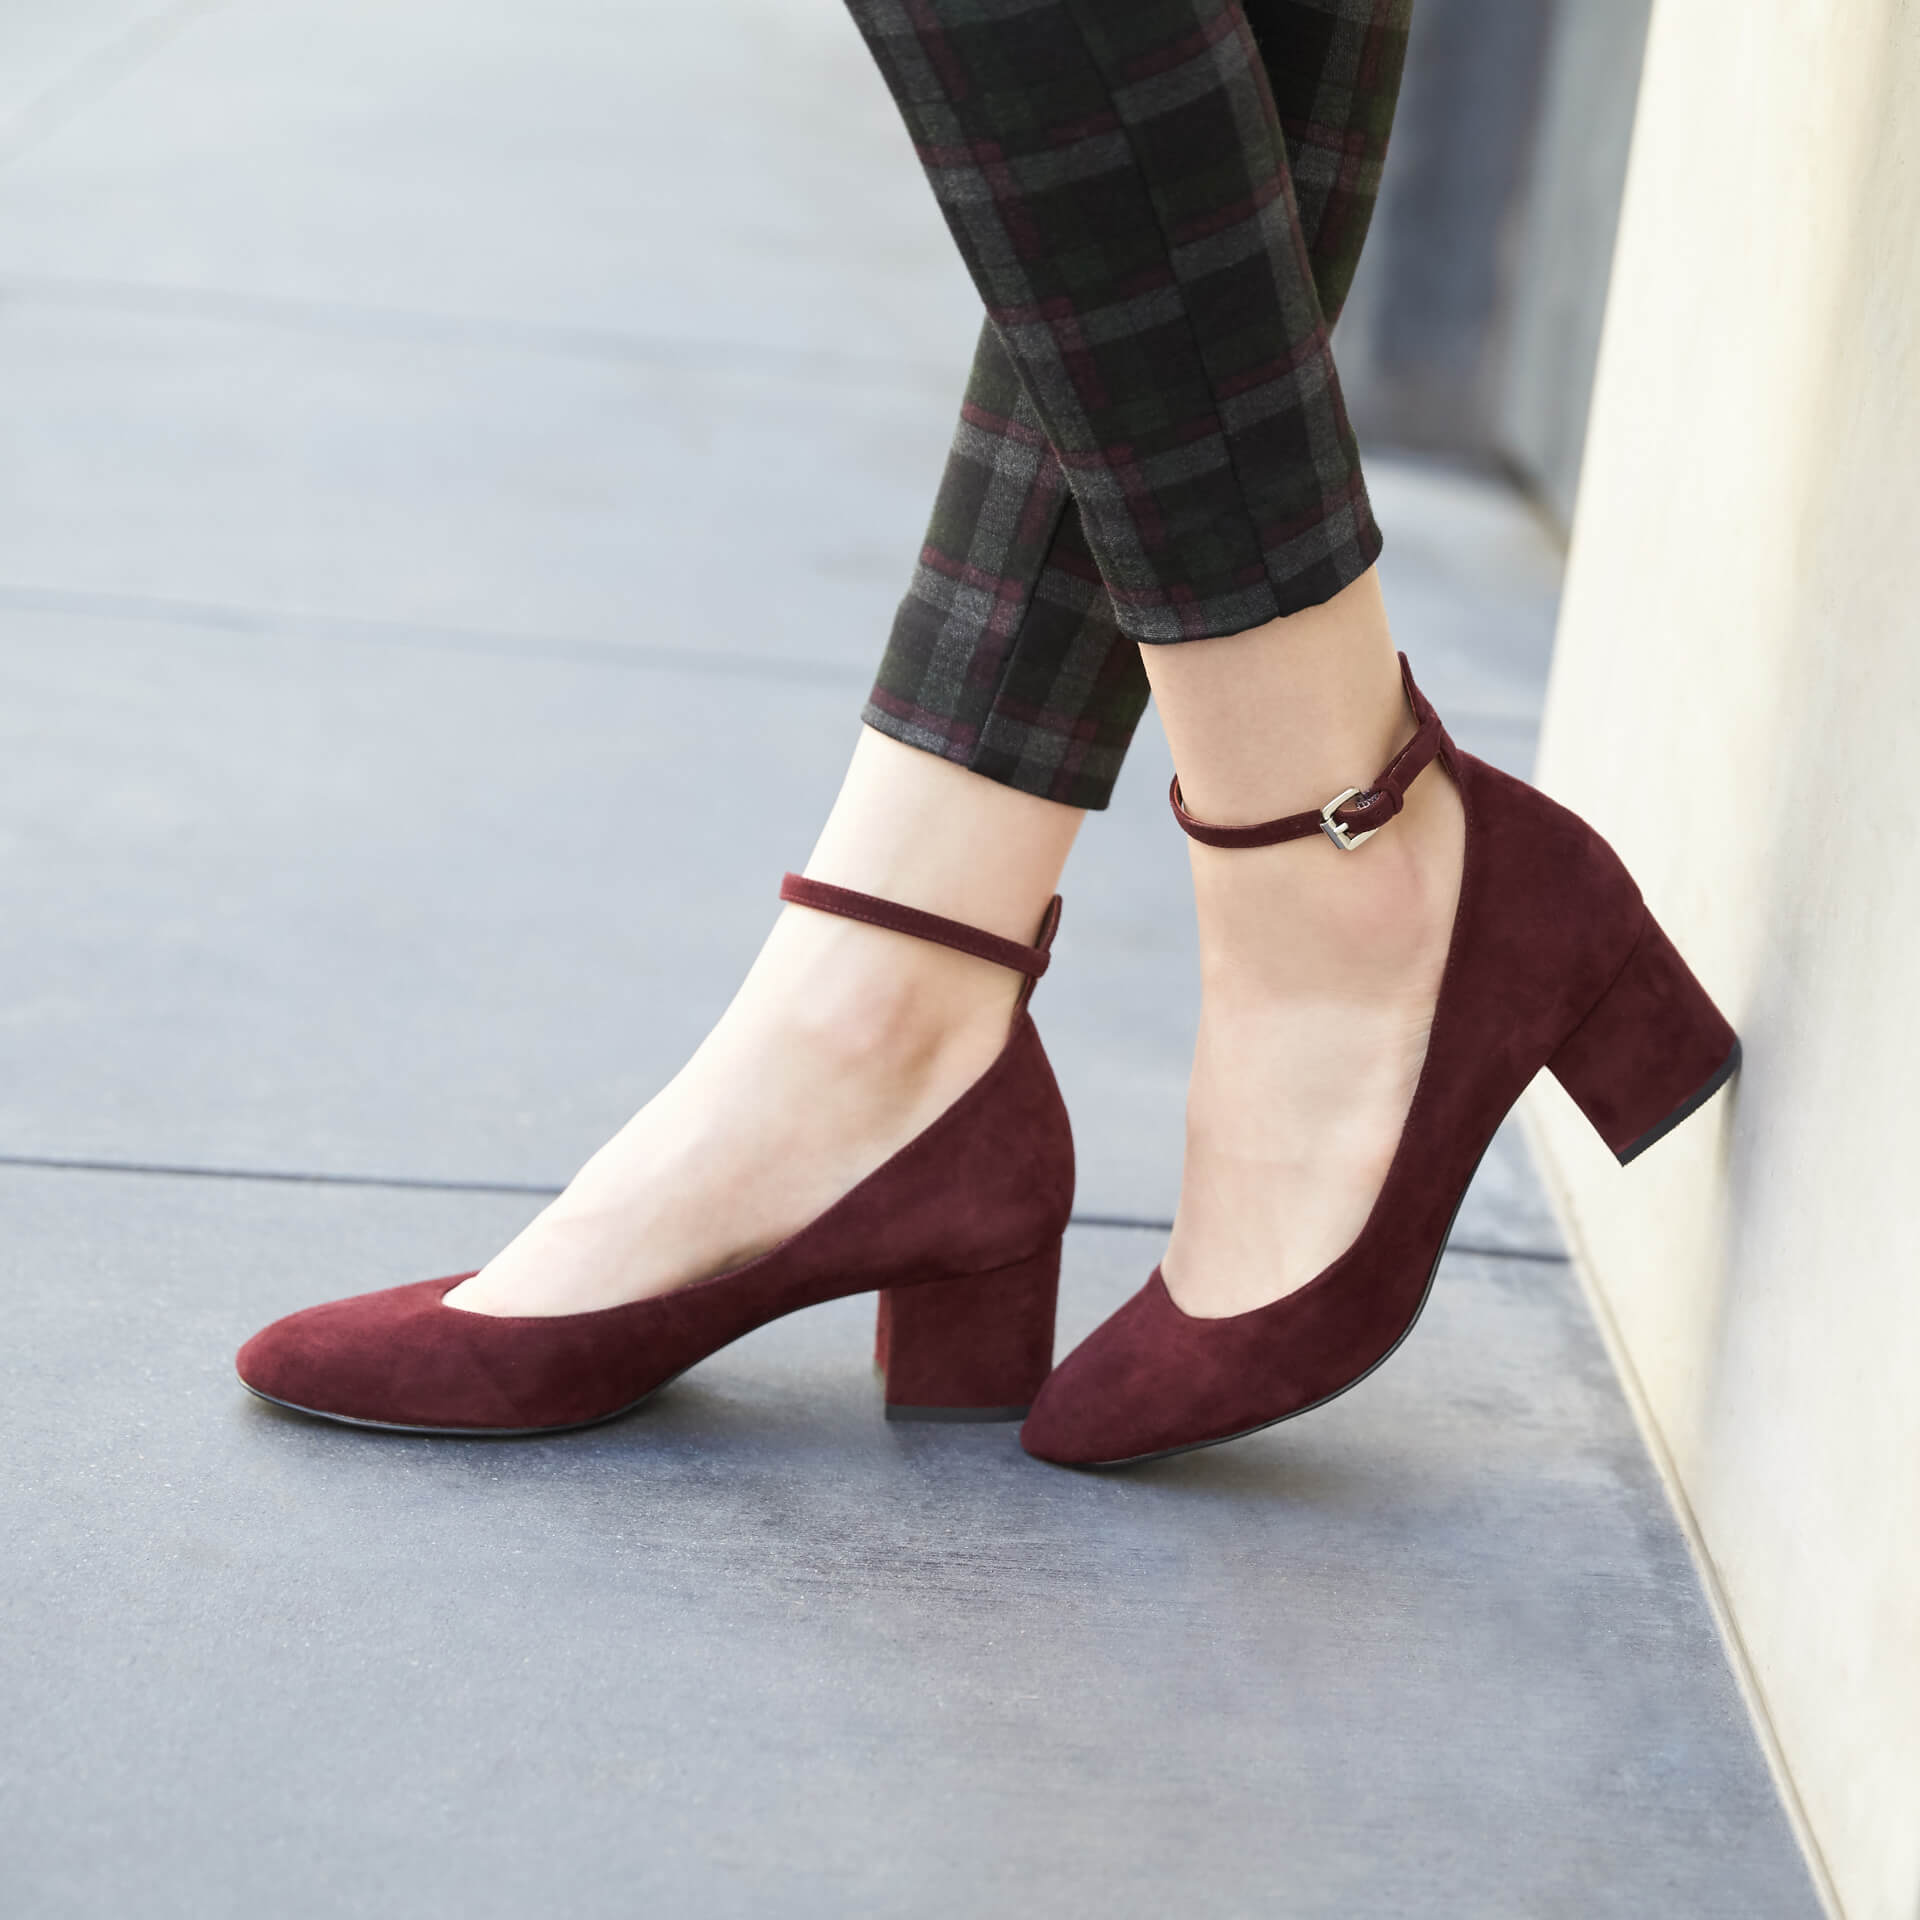 5 Fall Shoes Every Woman Should Own | Stitch Fix Style